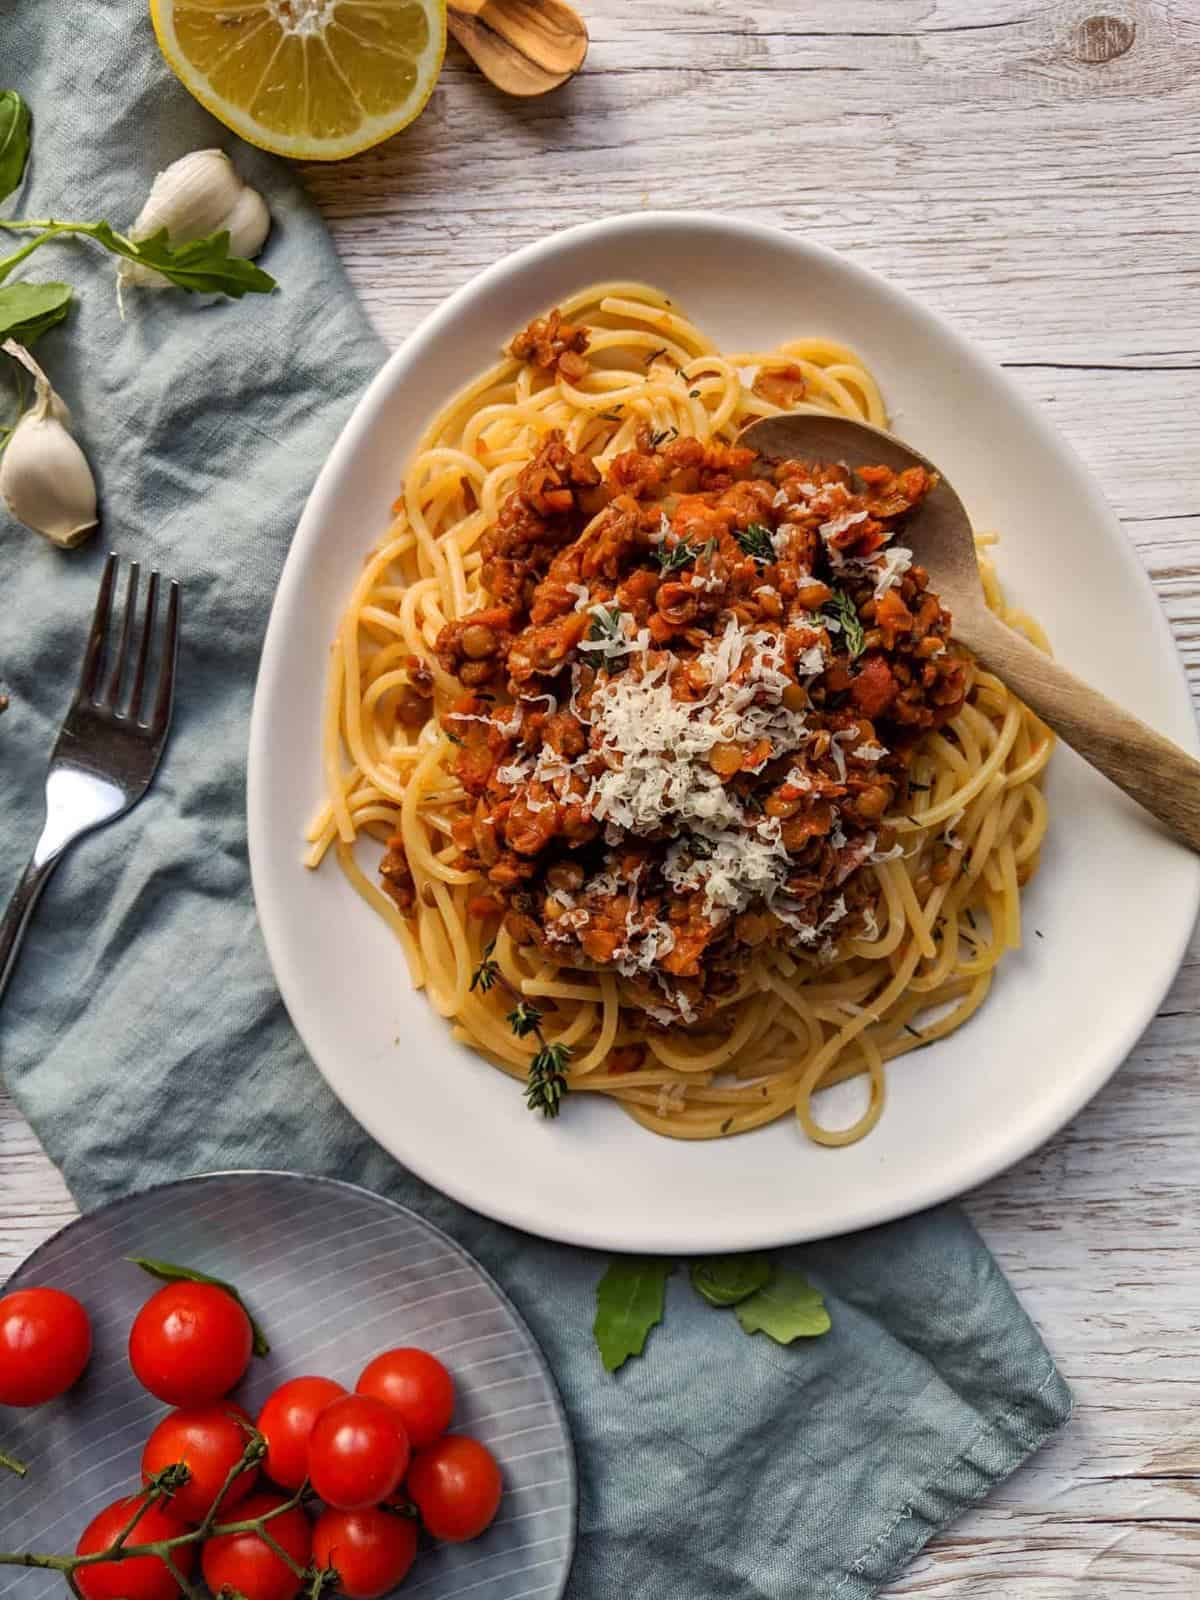 spaghetti covered with lentil bolognese on a plate